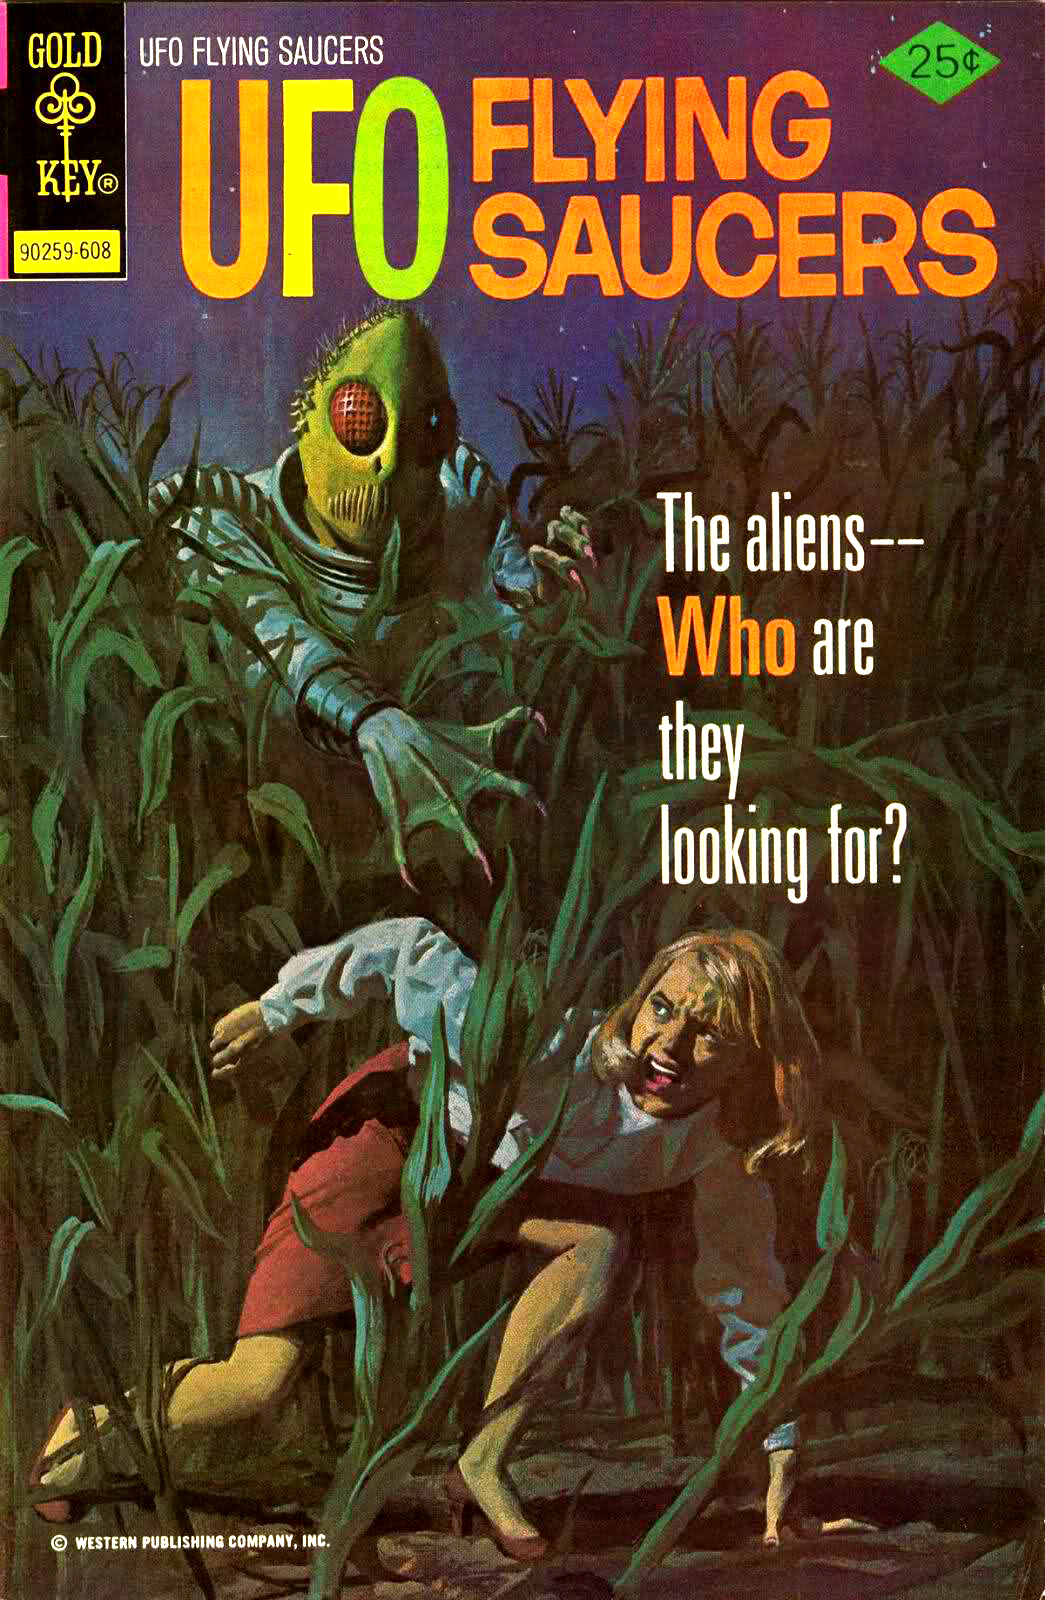 UFO Flying Saucers featured amazing painted covers.